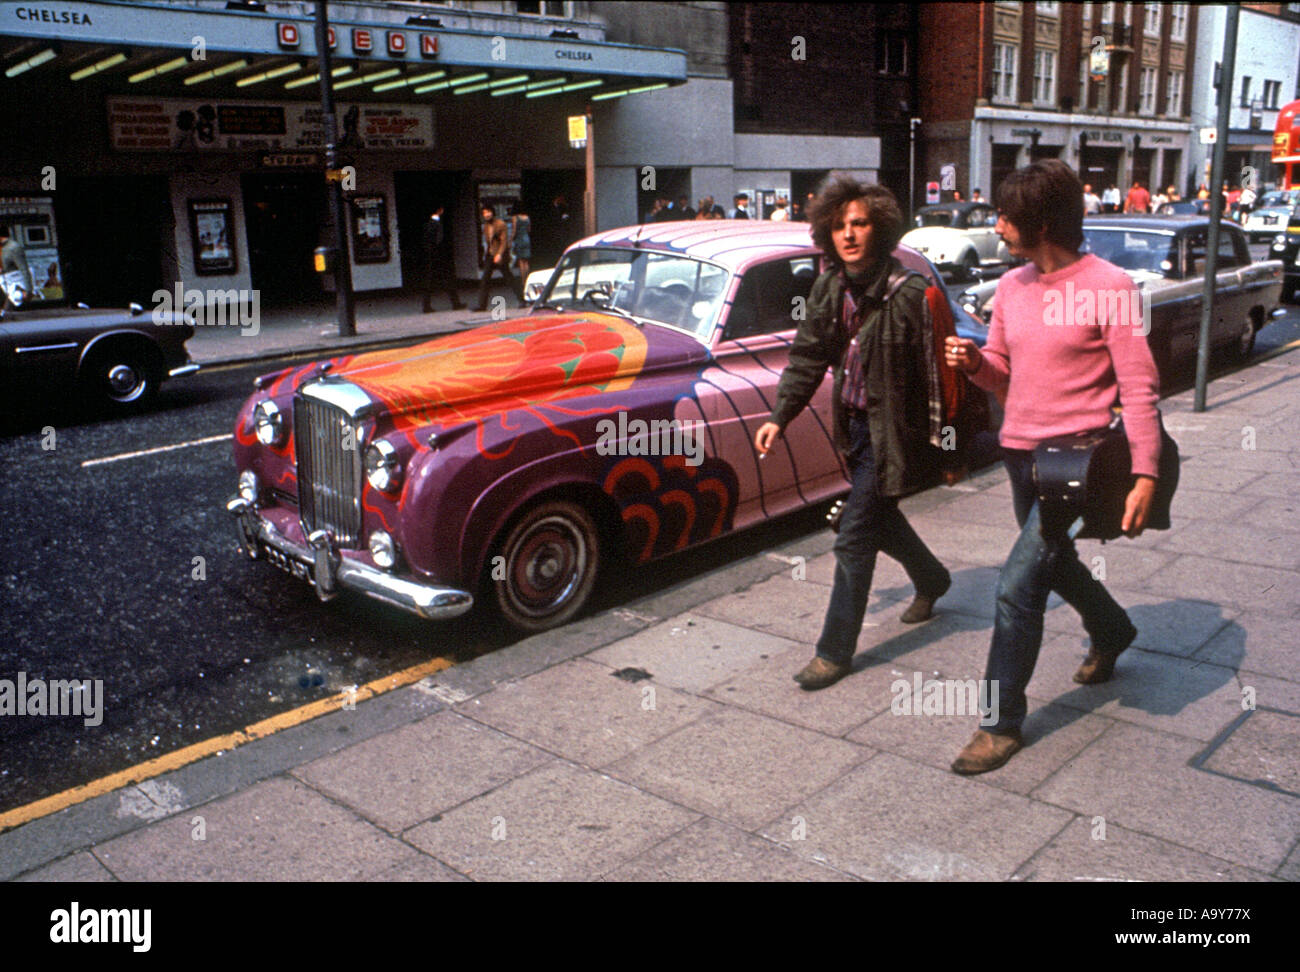 KINGS ROAD in Chelsea,London was at the centre of street fashion in 1965 when this shot was taken - Stock Image